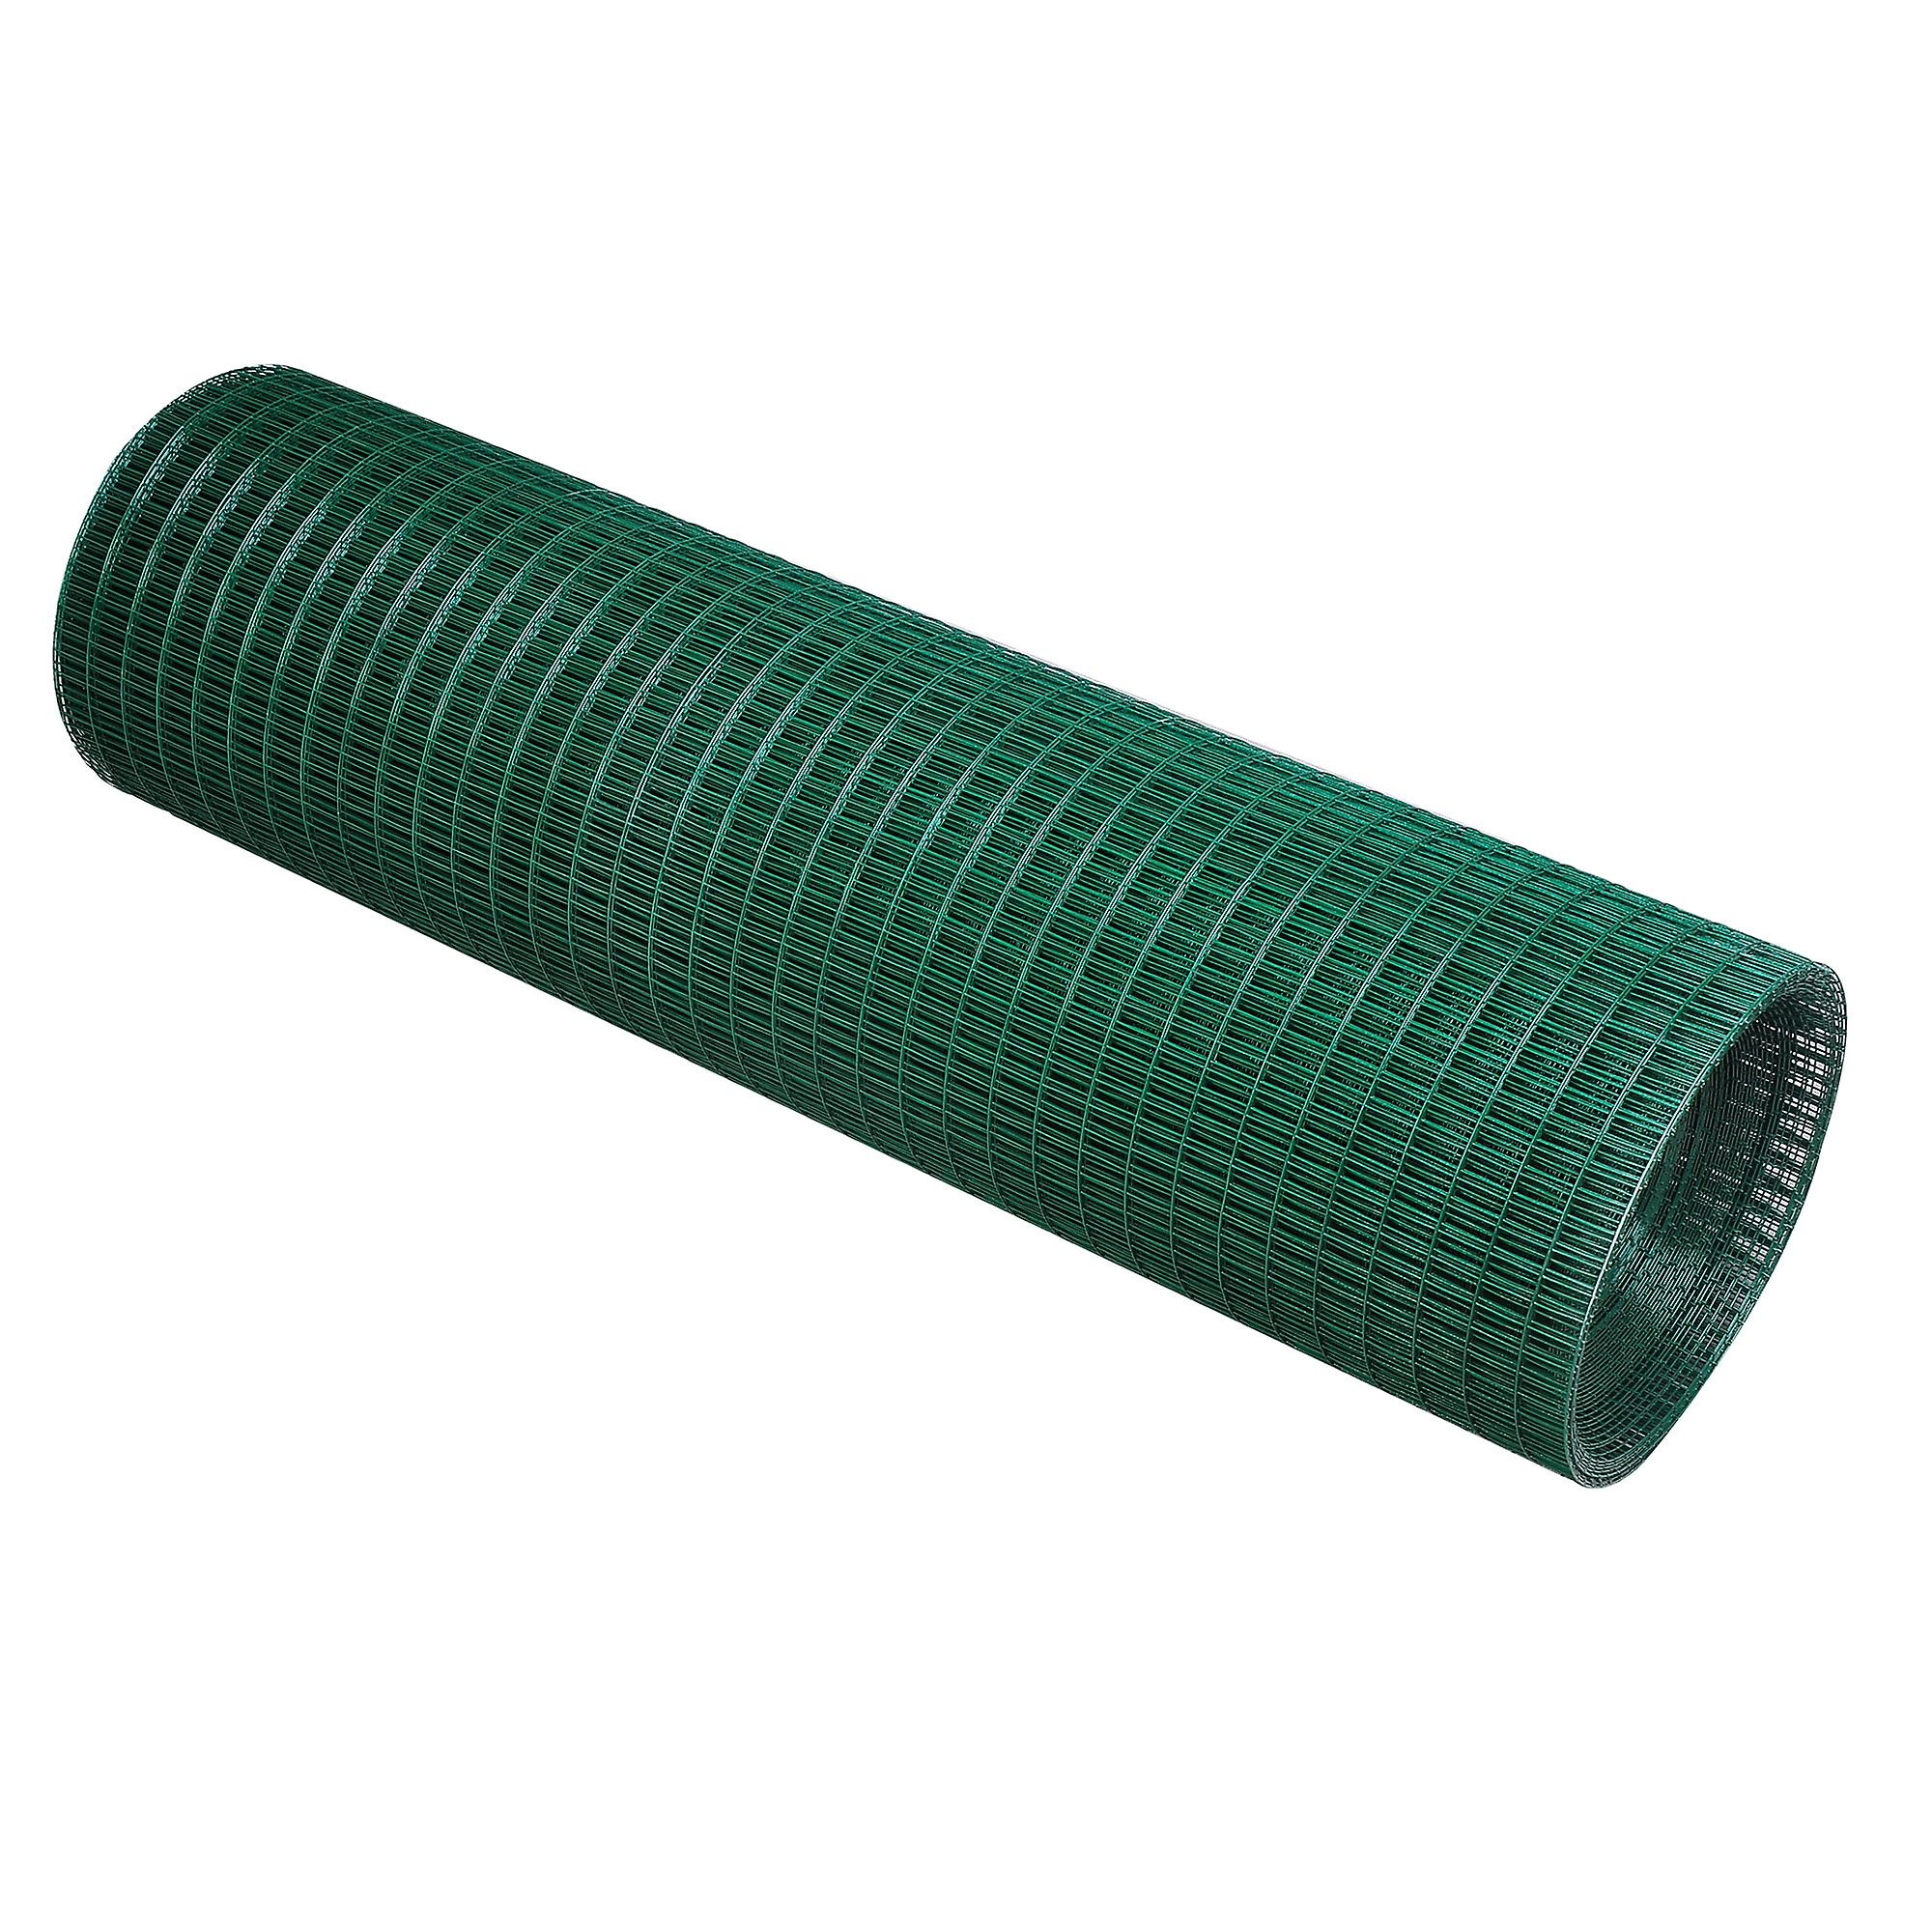 Pawhut PVC Coated Welded Wire Mesh Fencing Chicken Poultry Aviary ...